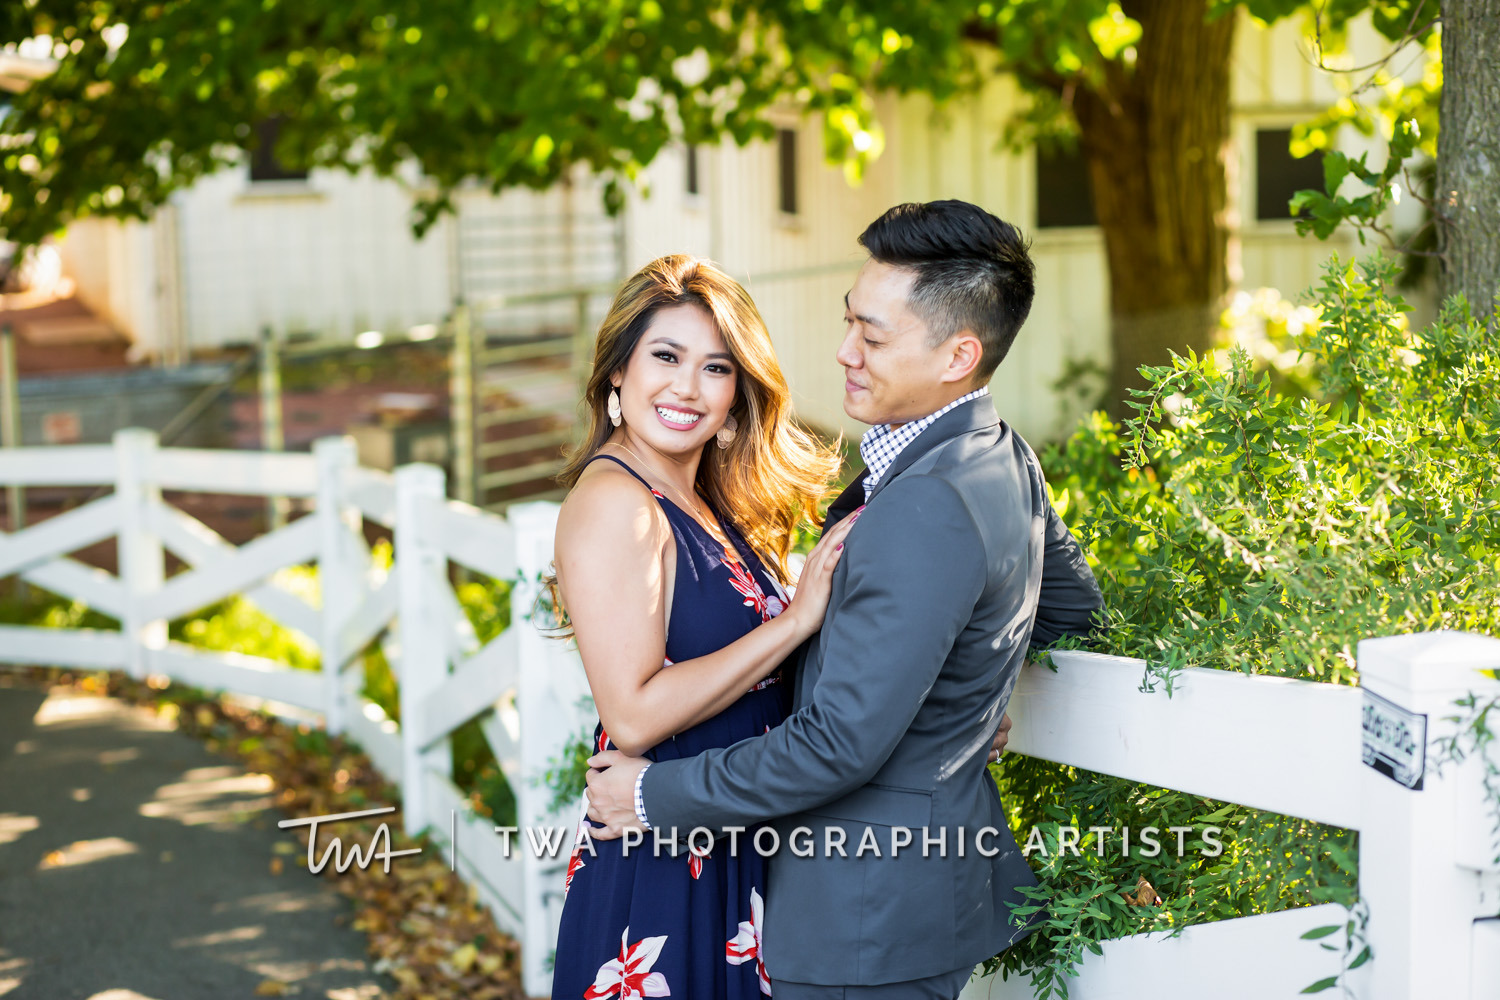 Chicago-Wedding-Photographer-TWA-Photographic-Artists-North-Ave-Beach_Butthajit_Dinh_MJ-008